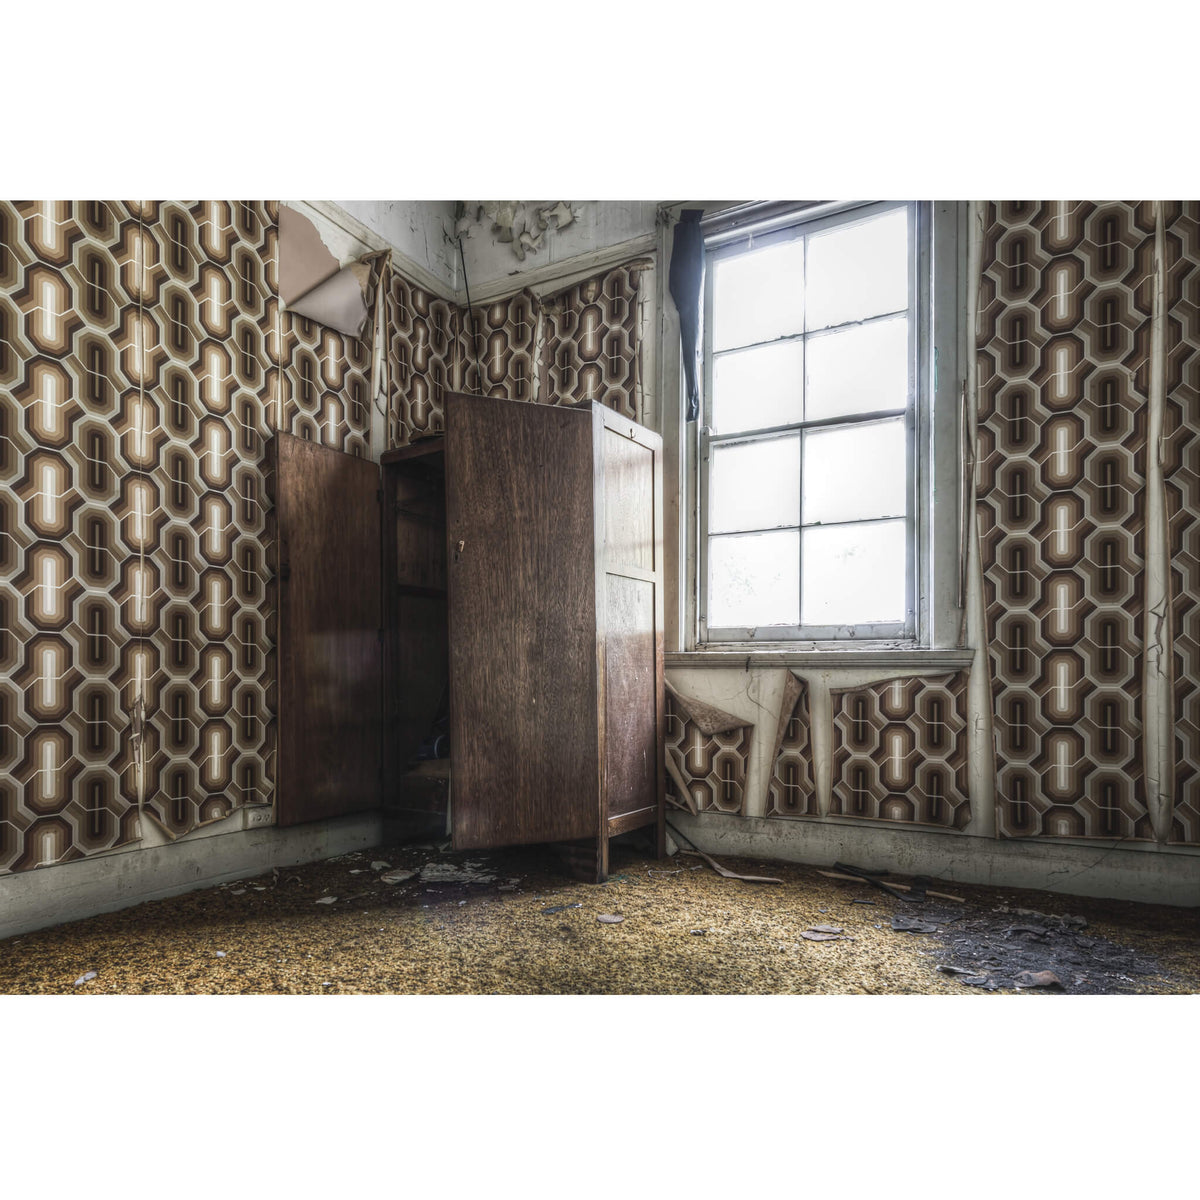 Wallpapered Guest Room | Terminus Hotel Fine Art Print - Lost Collective Shop